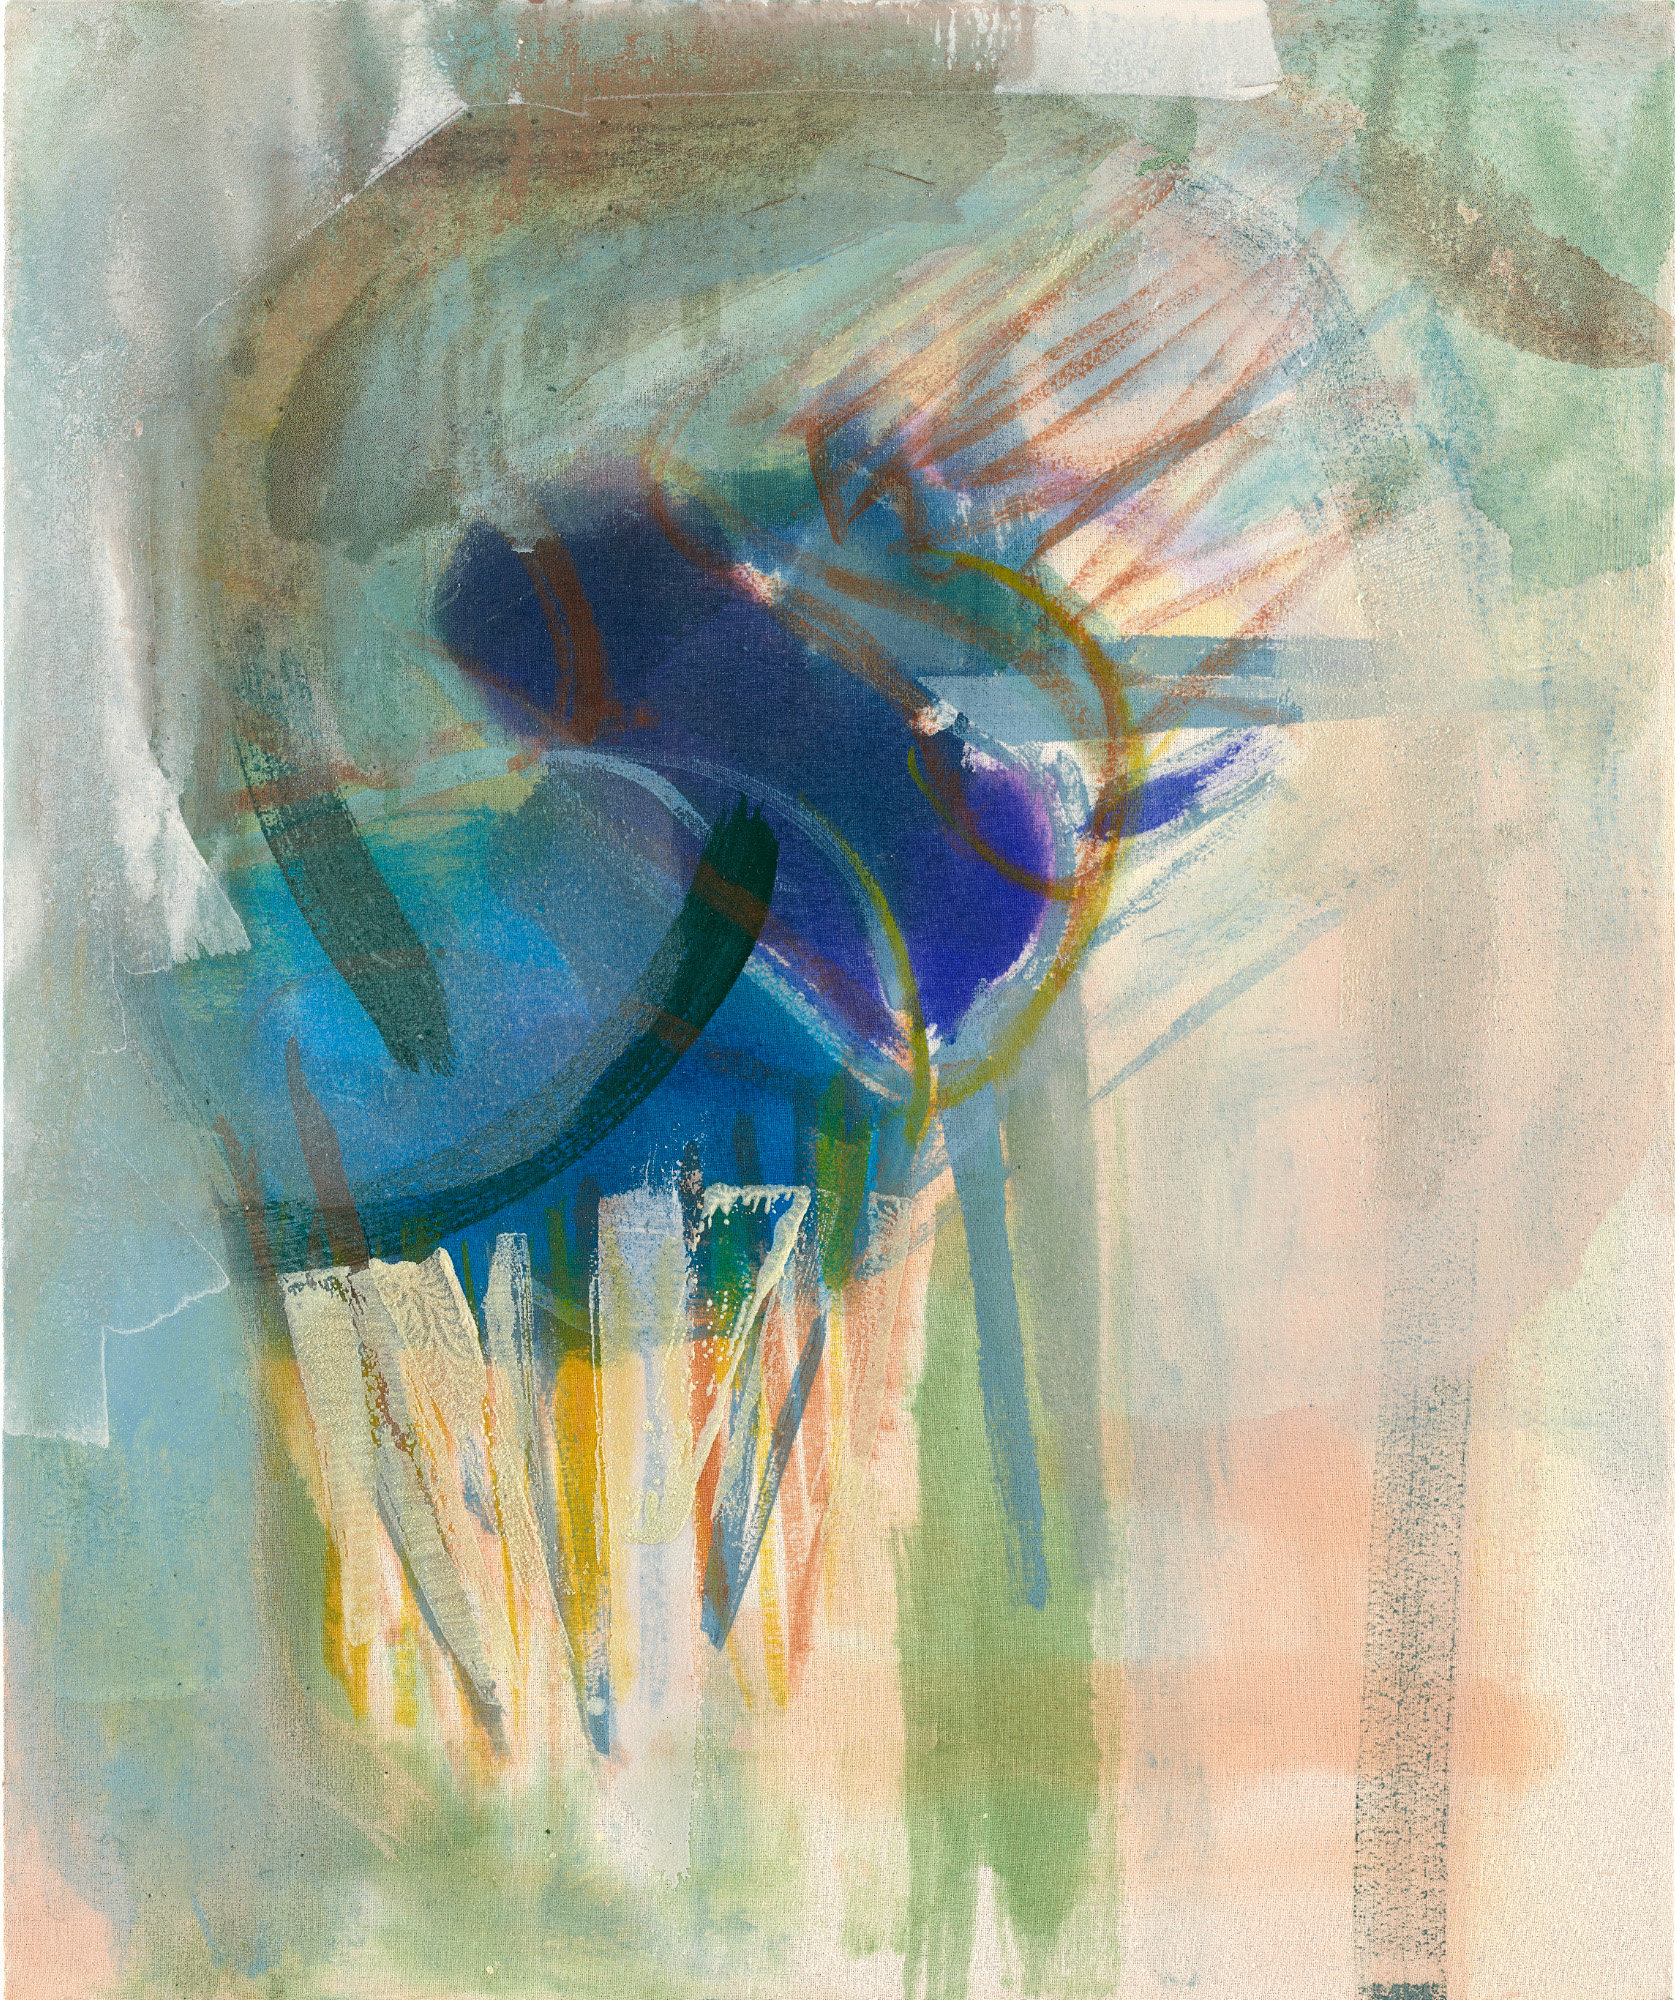 Michael Markwick – Perseverance, 2021, Acrylic and pigment on raw silk, 60 x 50 cm